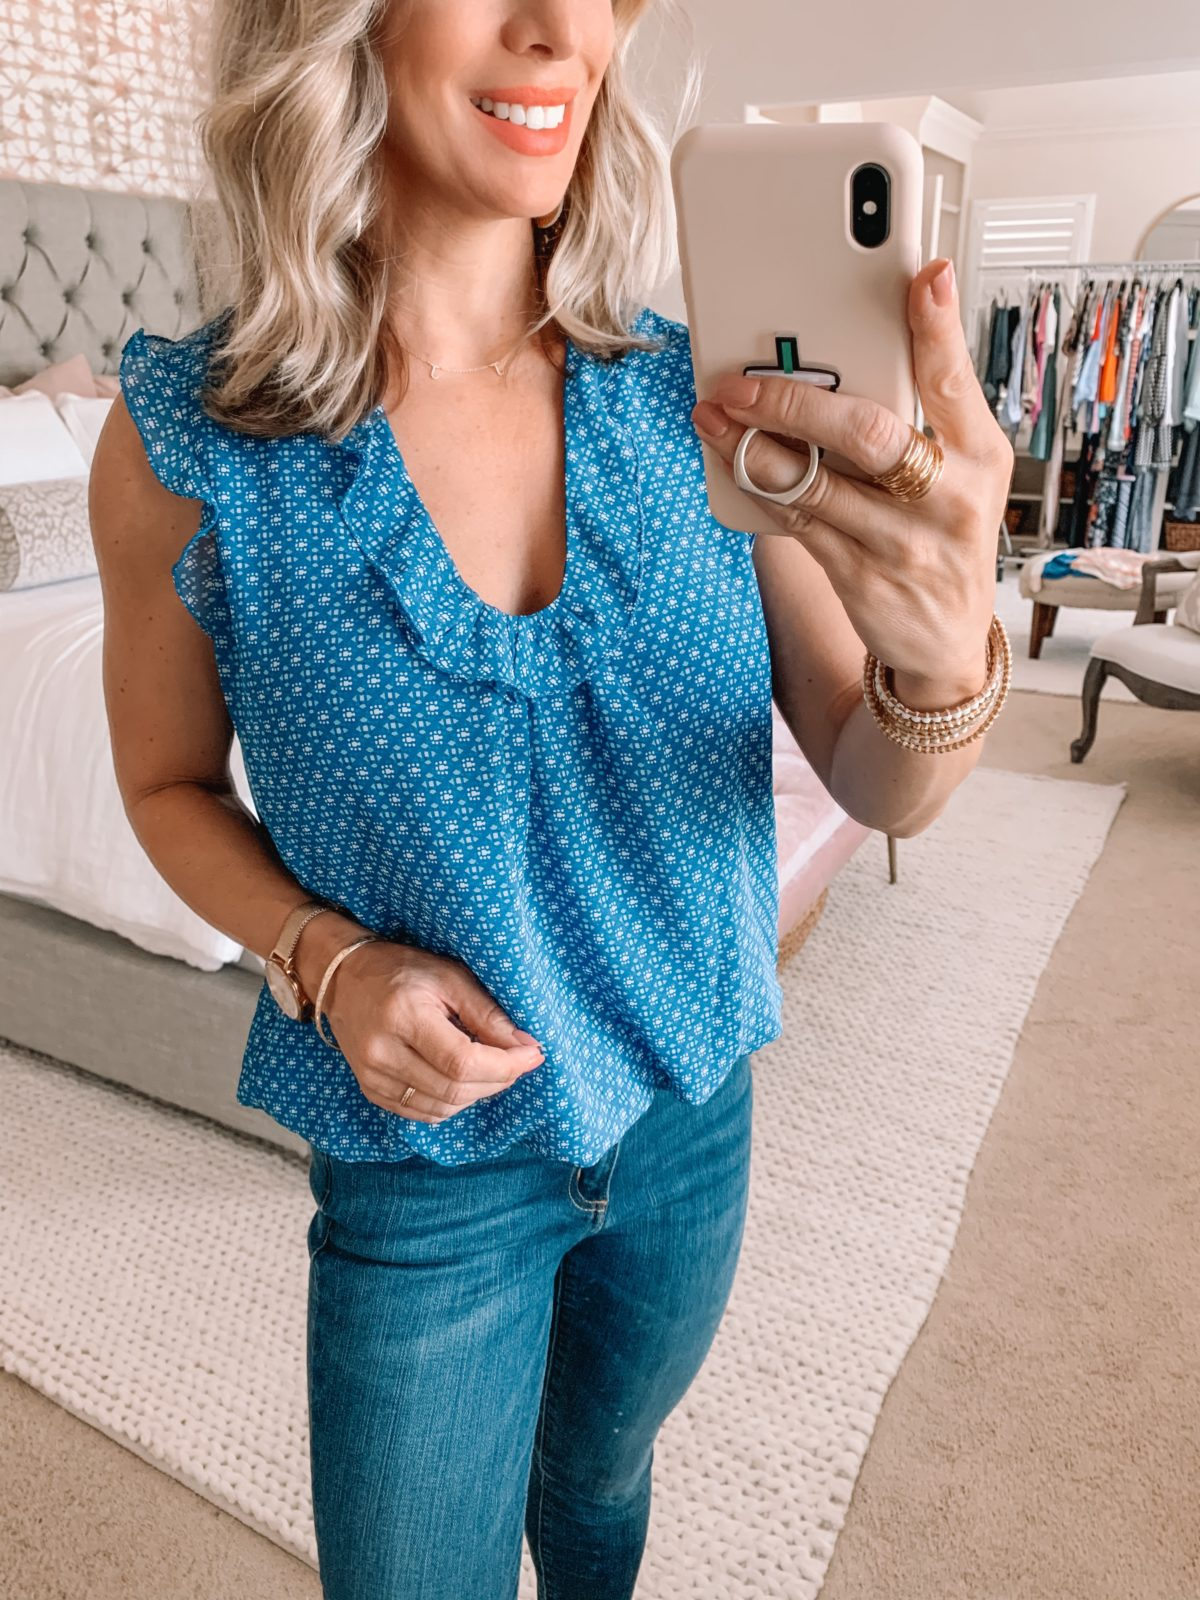 Amazon Fashion Finds, Blue Scoop Ruffle Neck Top, Skinny Jeans